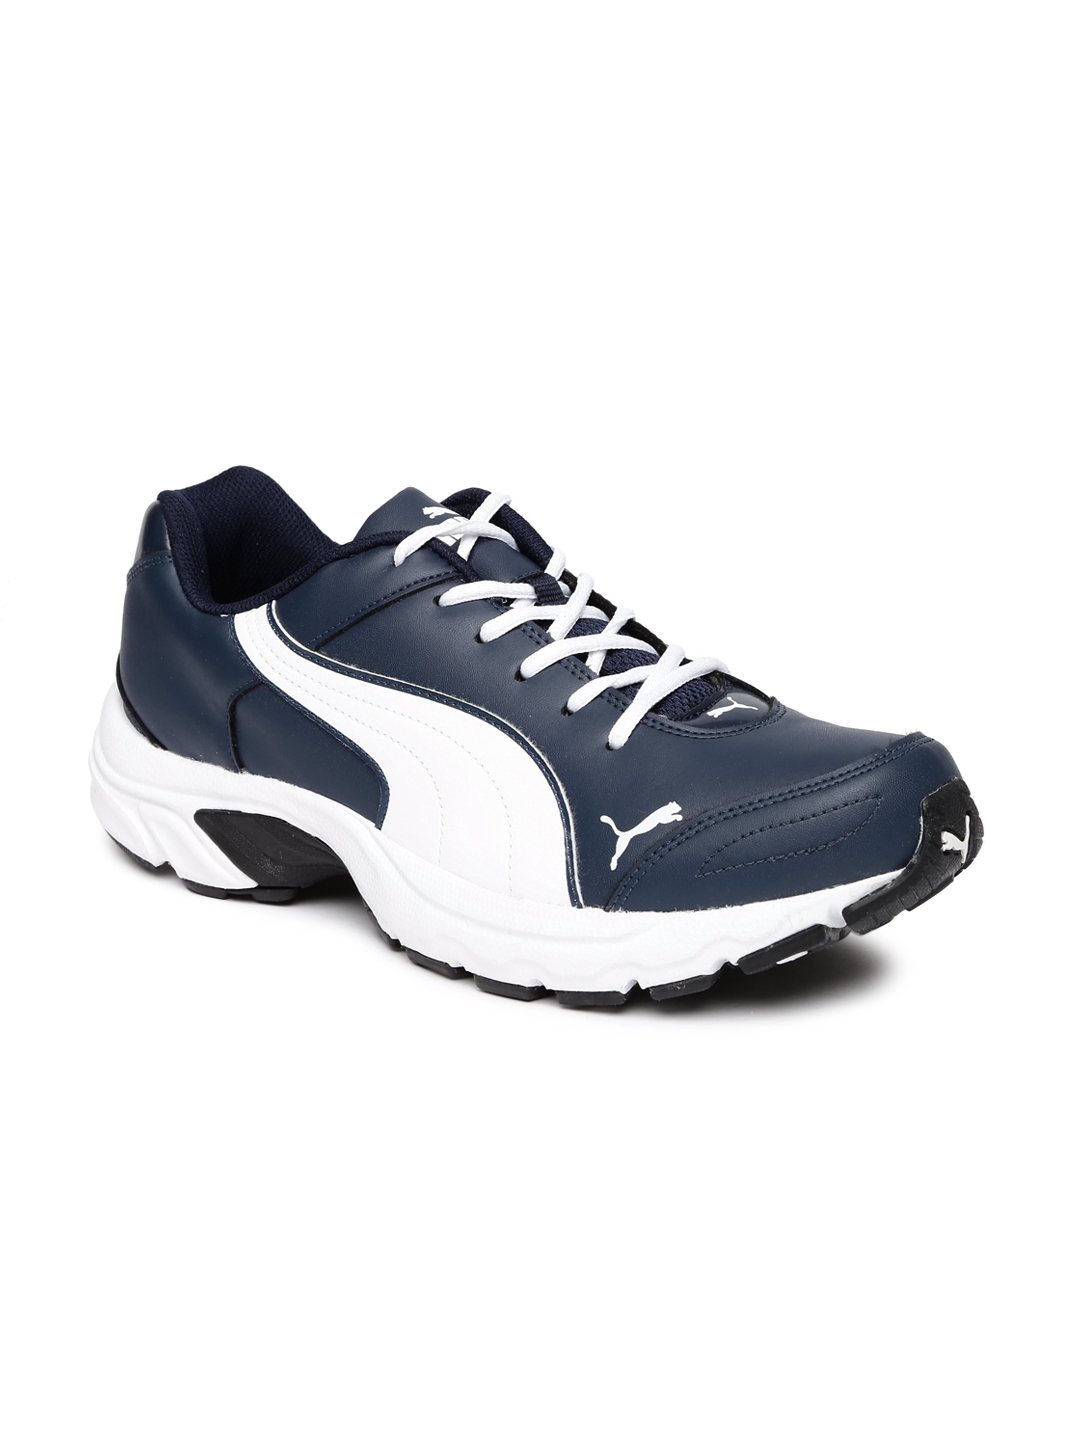 b41d31e346 puma sports shoes price in india cheap   OFF63% Discounted